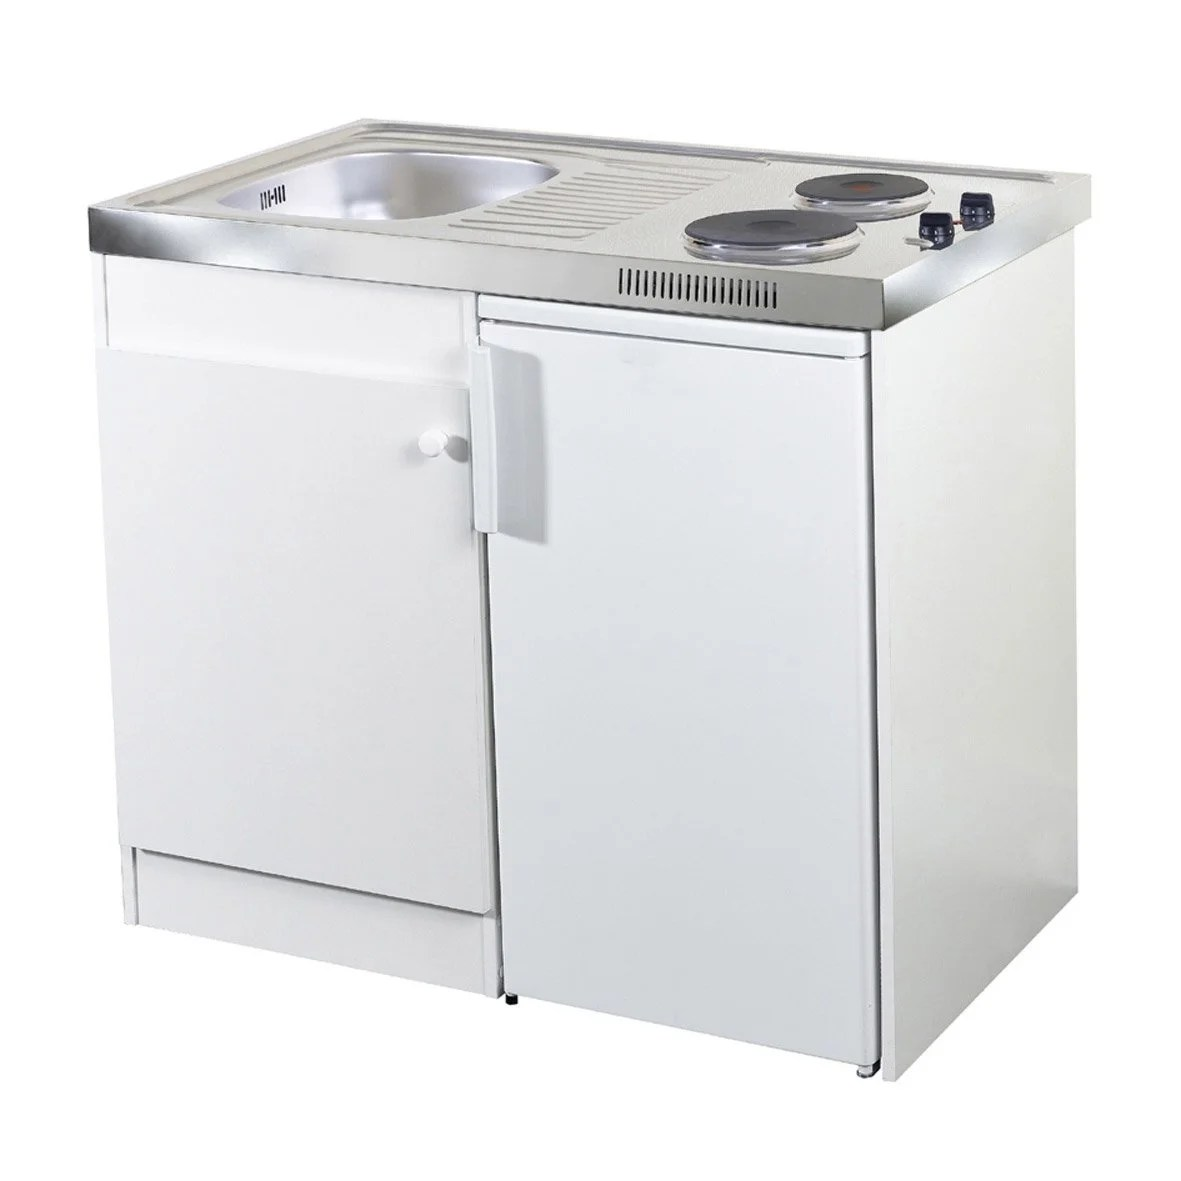 Kitchenette Leroy Merlin Kitchenette Spring électrique 100x60 Cm Blanc Leroy Merlin